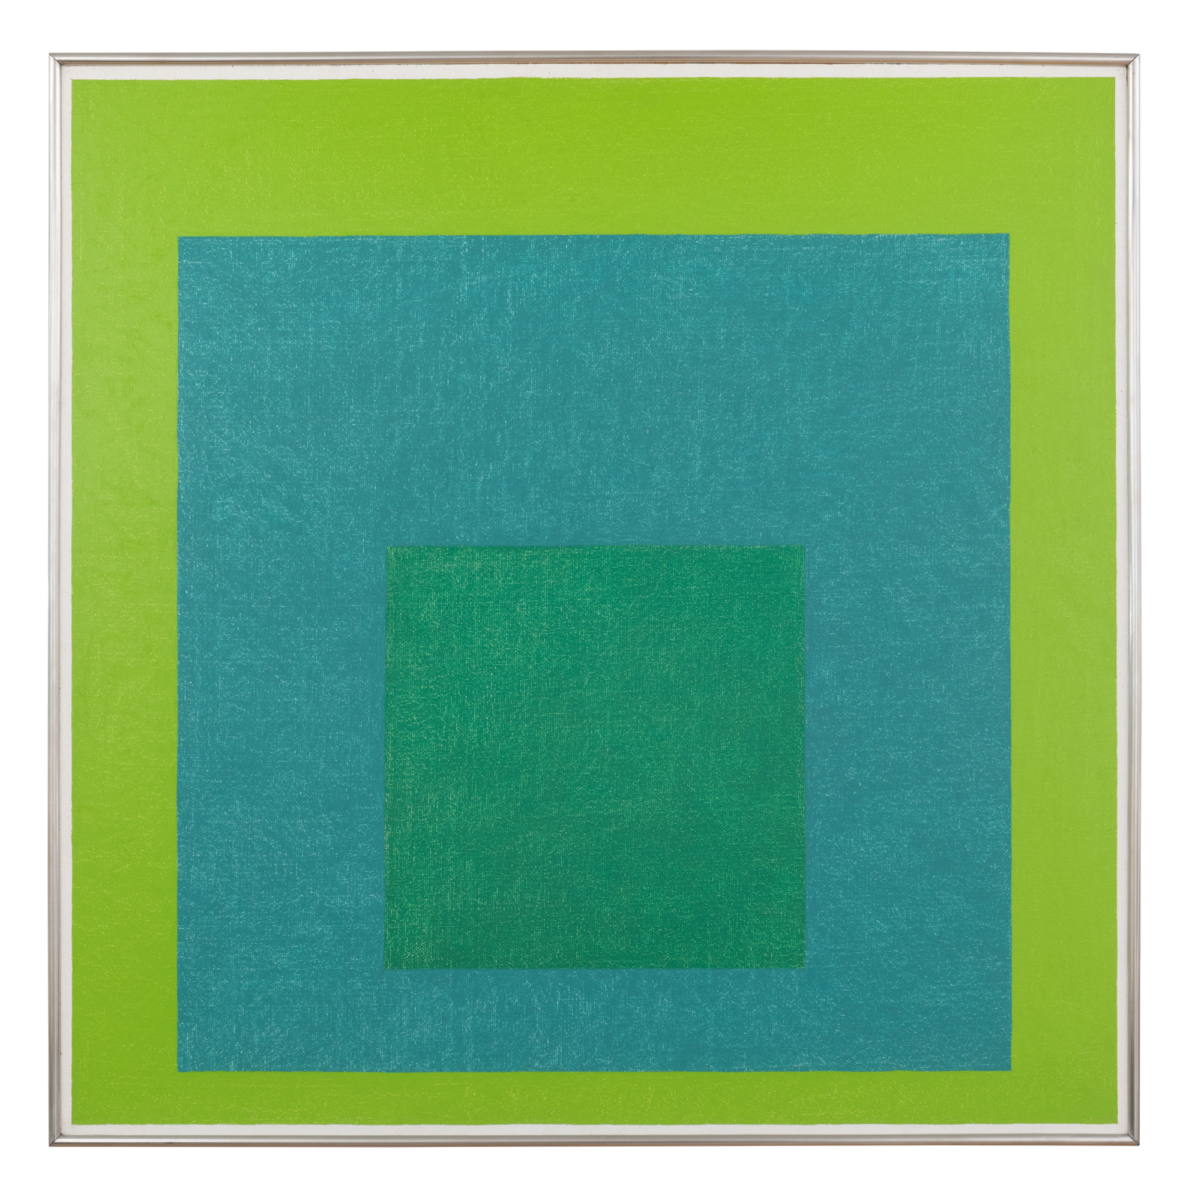 Josef Albers Homage to the Square 1959 original oil painting for sale